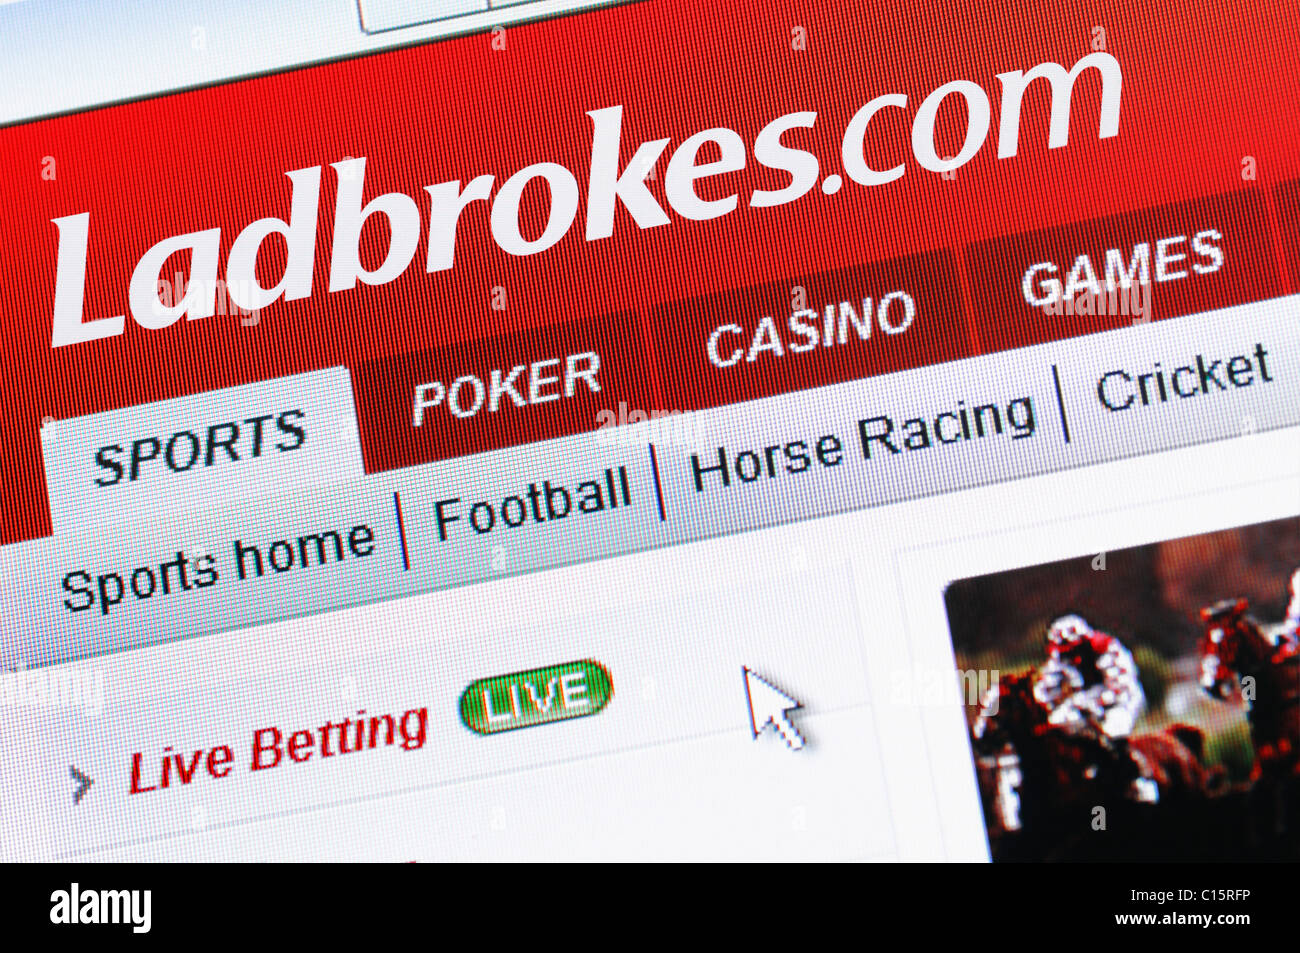 Ladbrokes Online Gambling and Bookmaker. Ladbrokes.com is the Internet Version of the Bookmaker. - Stock Image